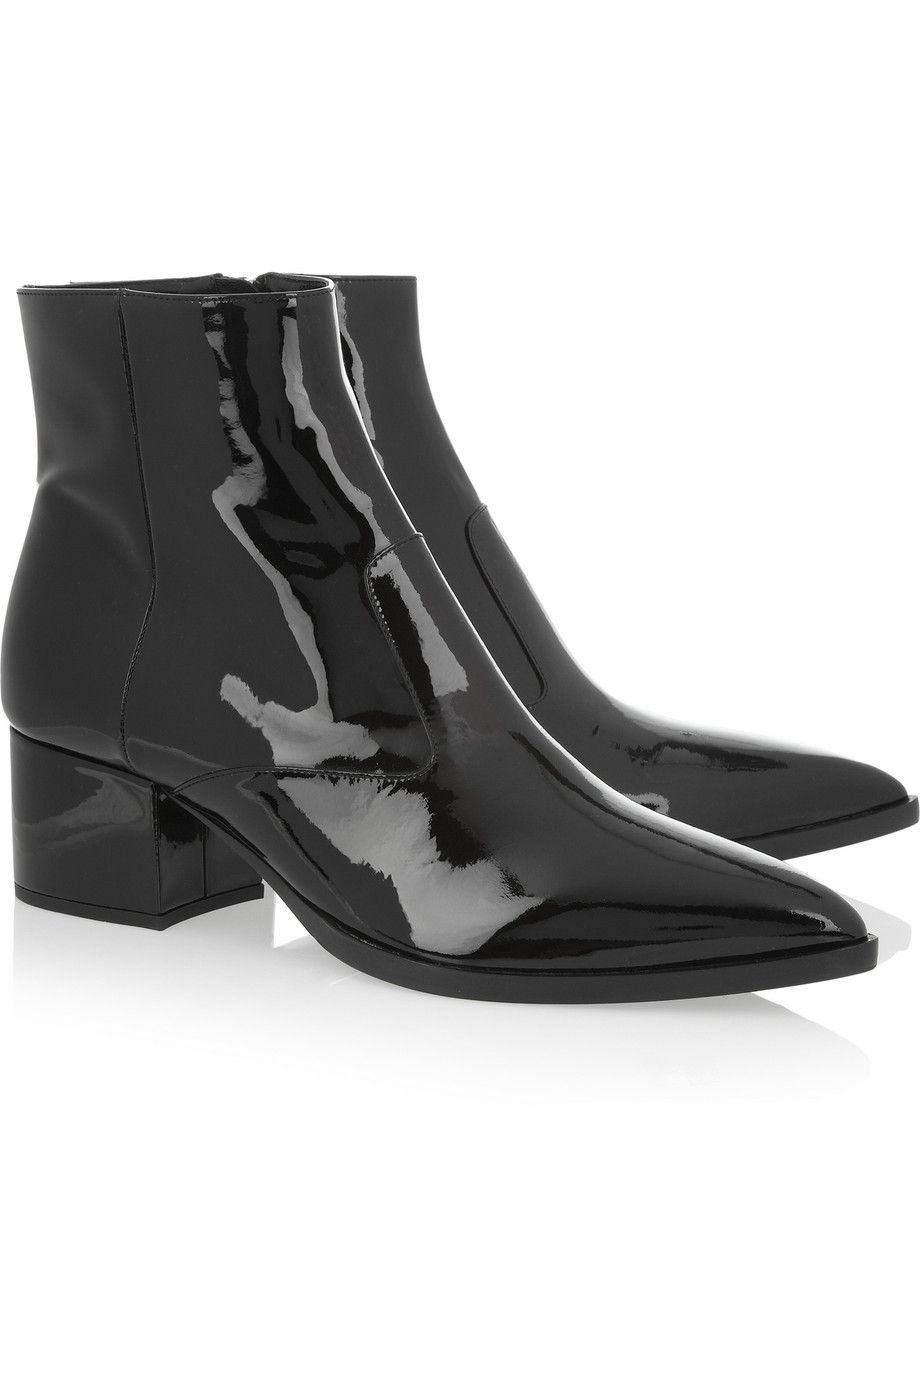 Black Patent-leather ankle boots | Miu